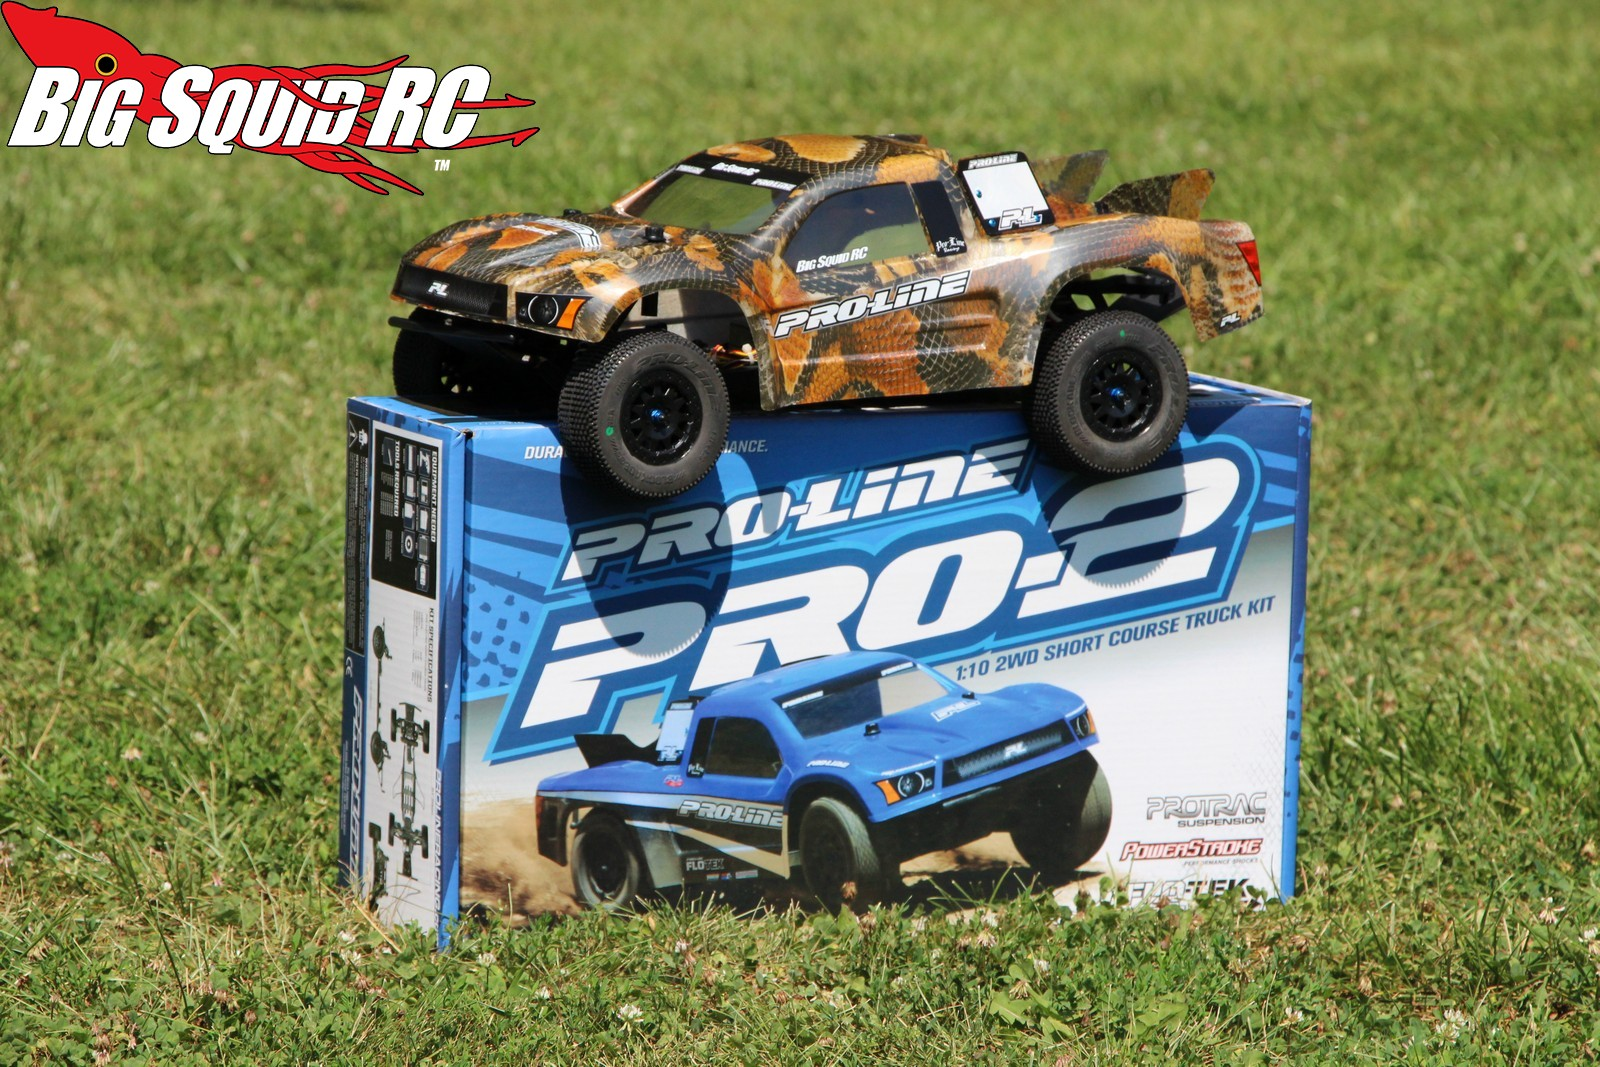 Review – Pro-Line PRO-2 Short Course Truck Kit « Big Squid RC – on best rc truck for racing, best rc truck off-road, best rc bodies, hpi monster truck, best rc truggy, best rc crawler, best rc nitro, best rc stadium truck, rc desert truck, best traxxas truck, rc monster truck, best rc esc, best rc axial, rc fuel truck, best rc drift truck, best rc rtr, best rc buggy, best short course motor, best rc rally truck, best short course 2wd truck,